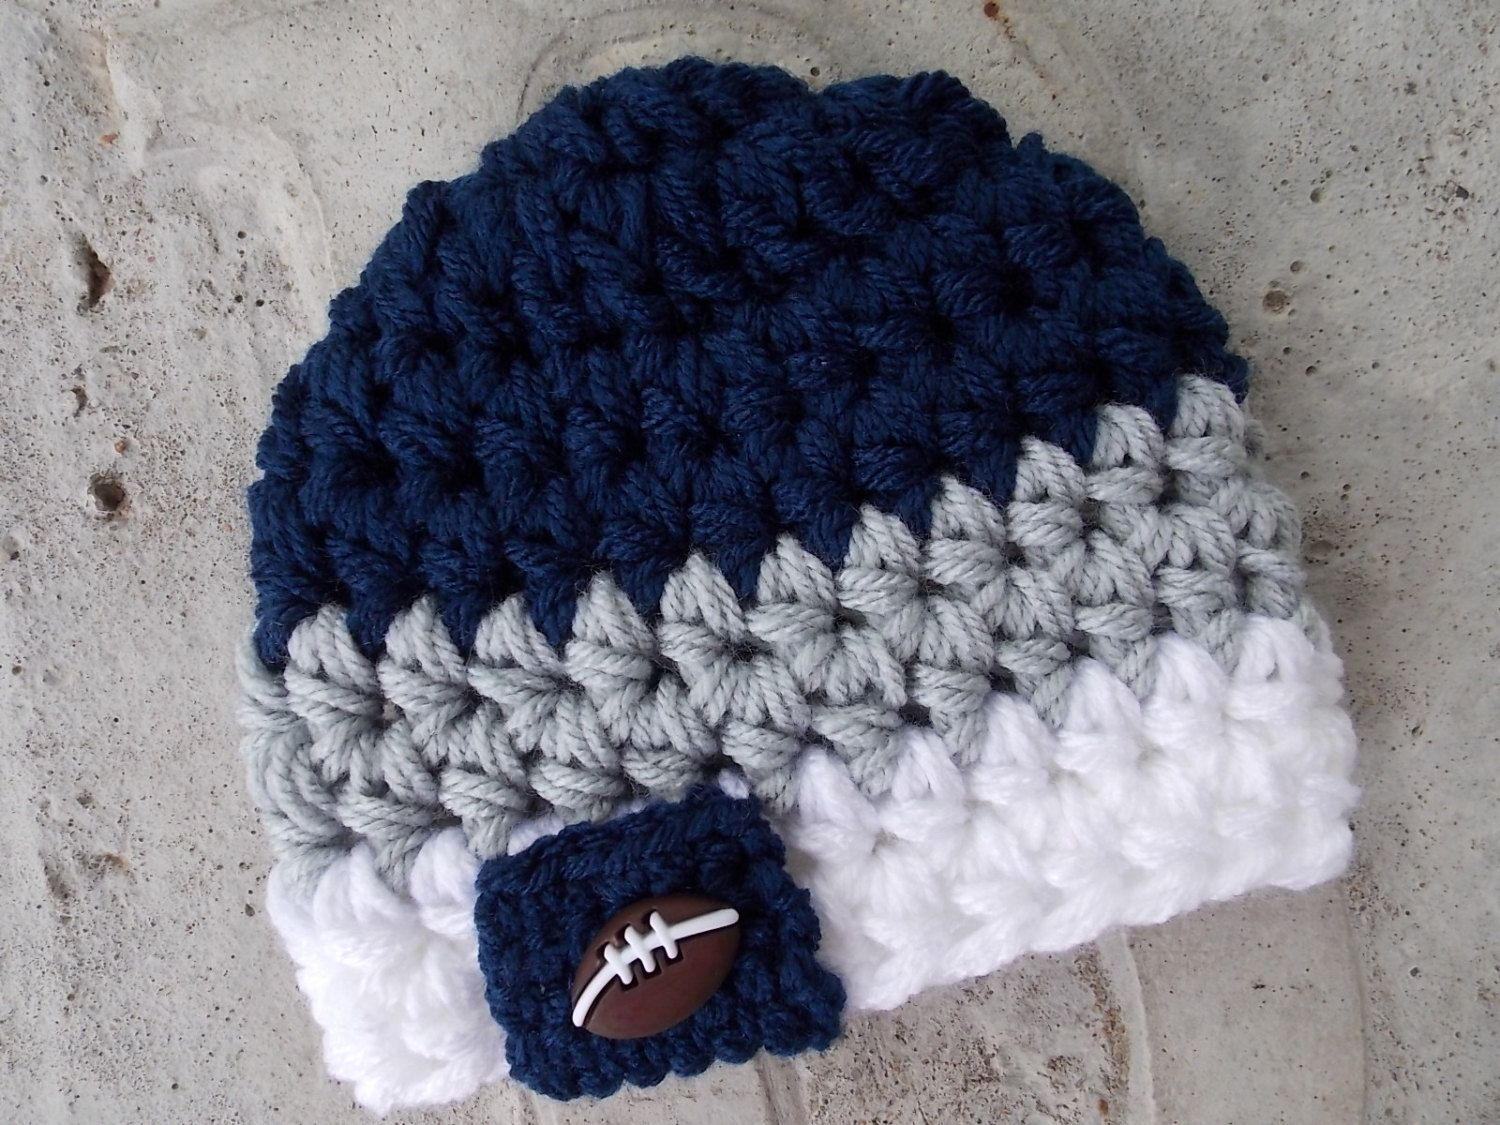 2ad020e51f3 ... sweden baby nfl knit hats patterns cf429 cca29